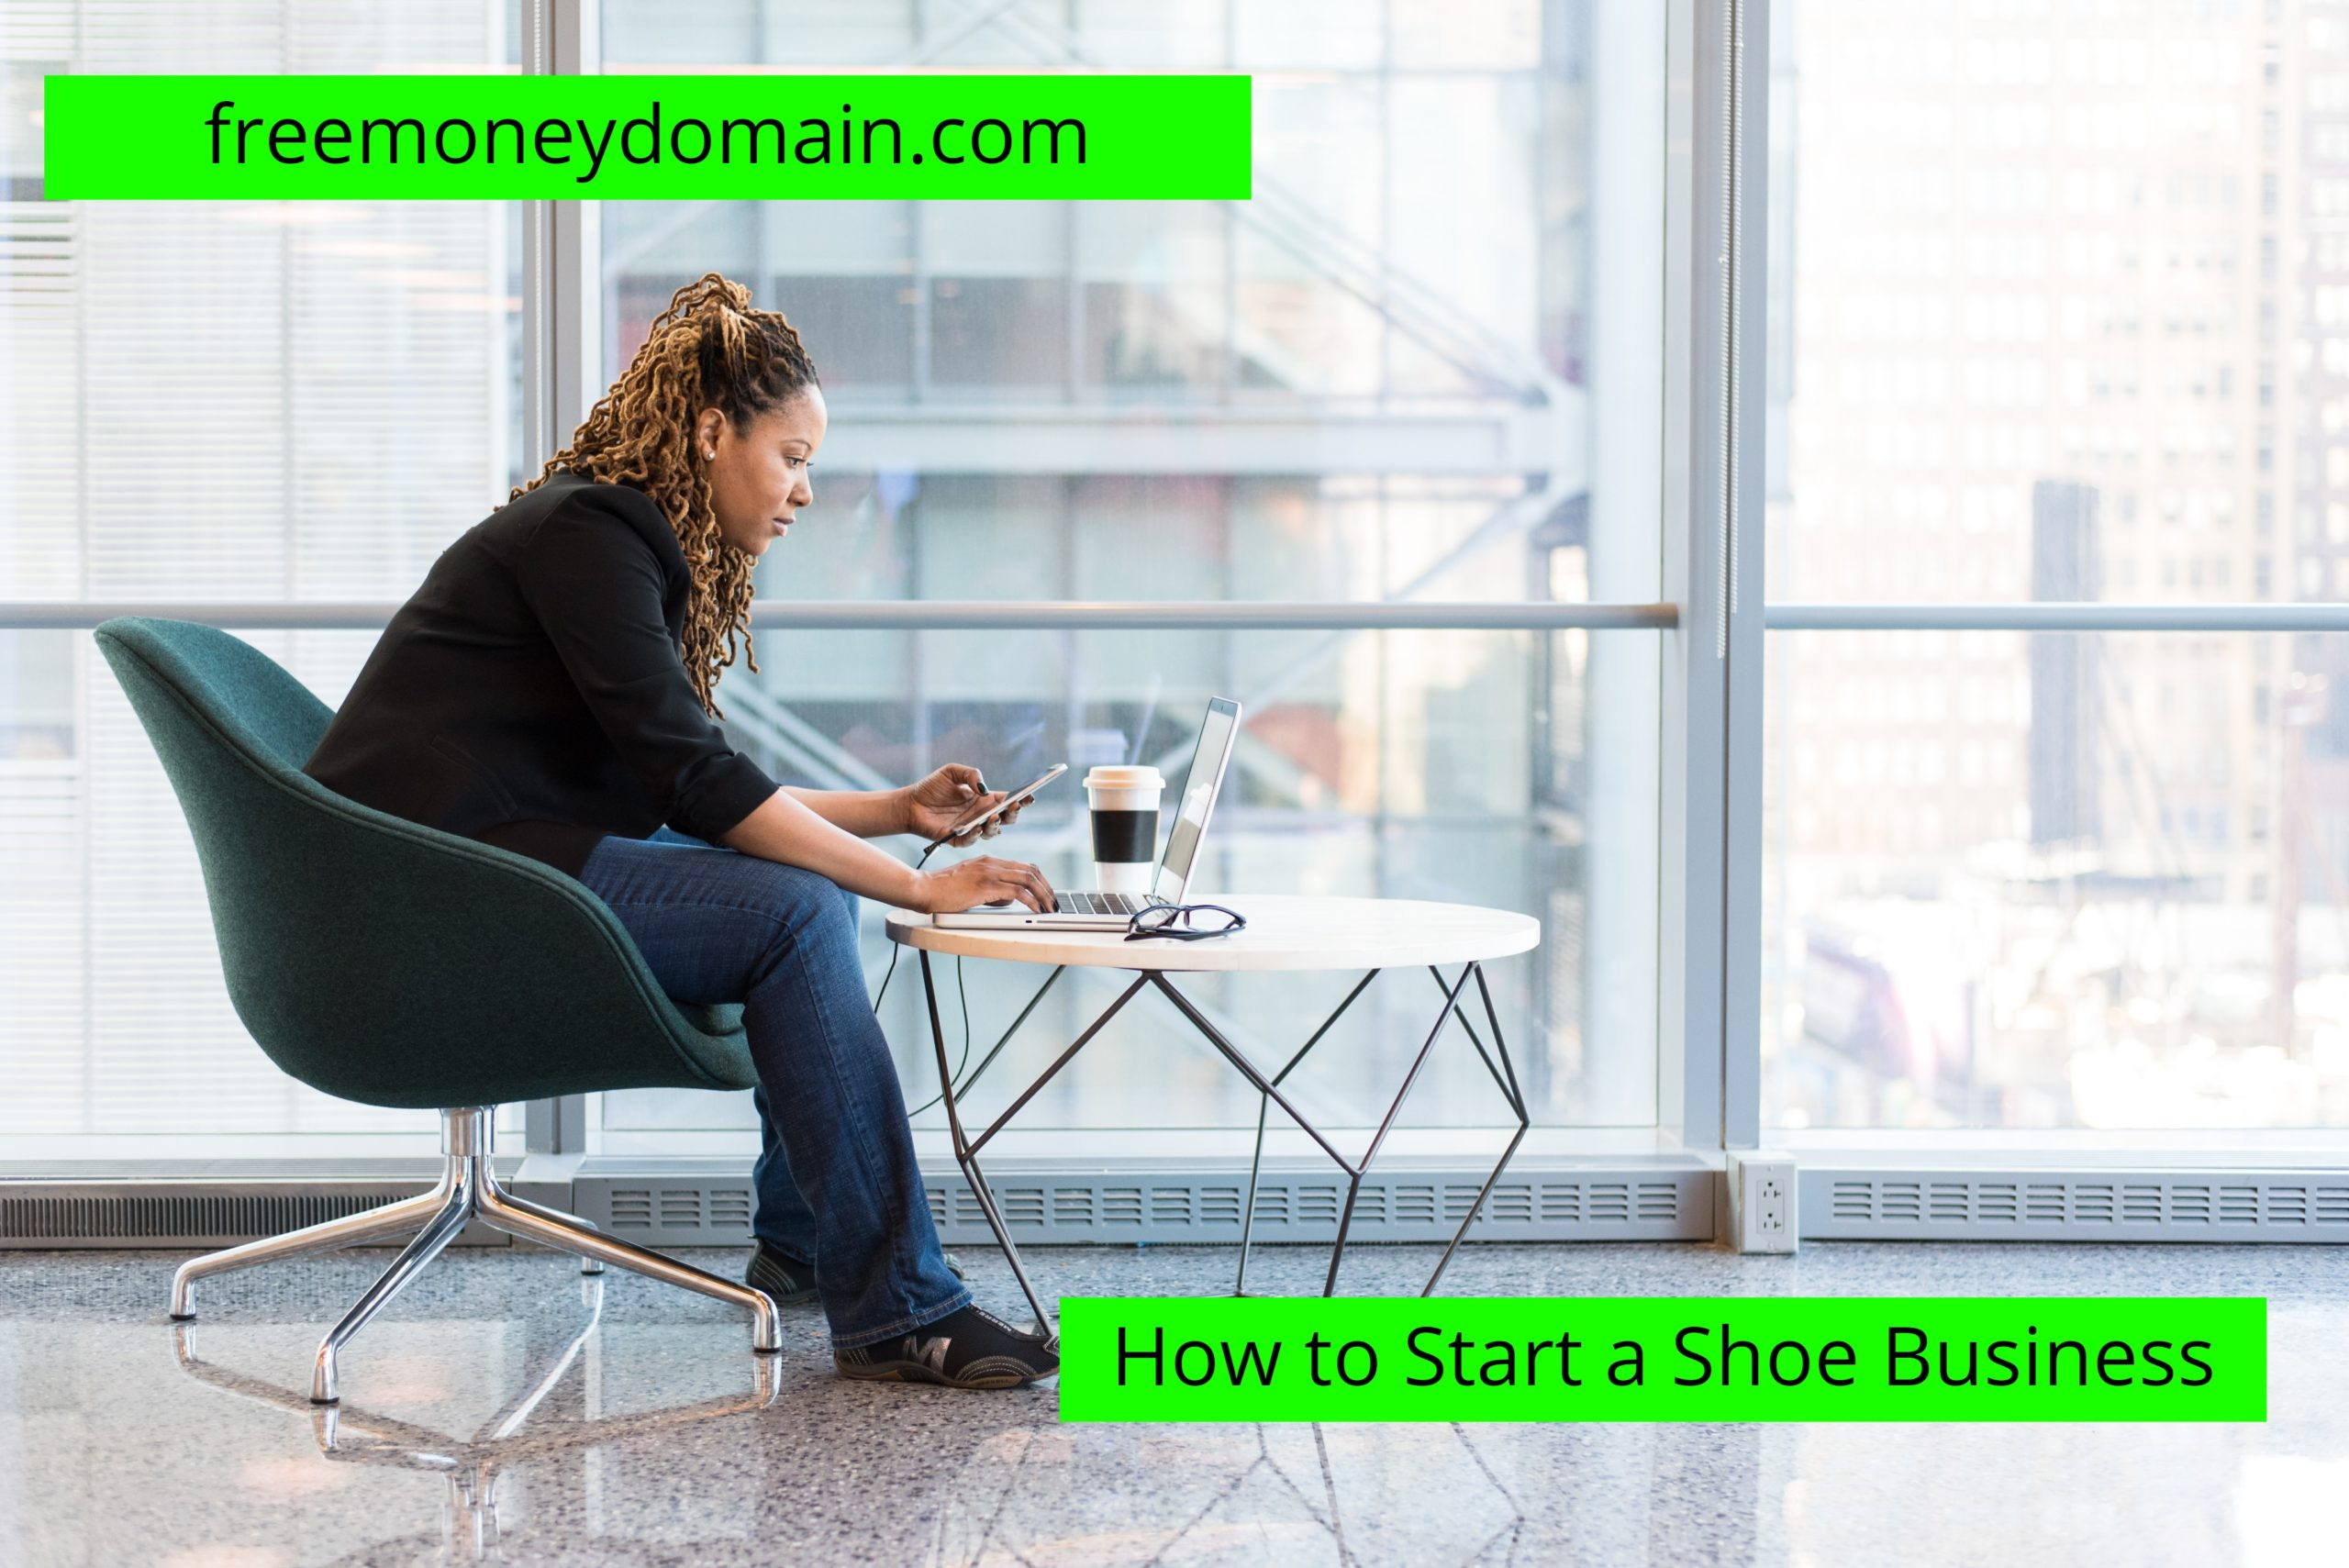 How to Start a Shoe Business in 2021